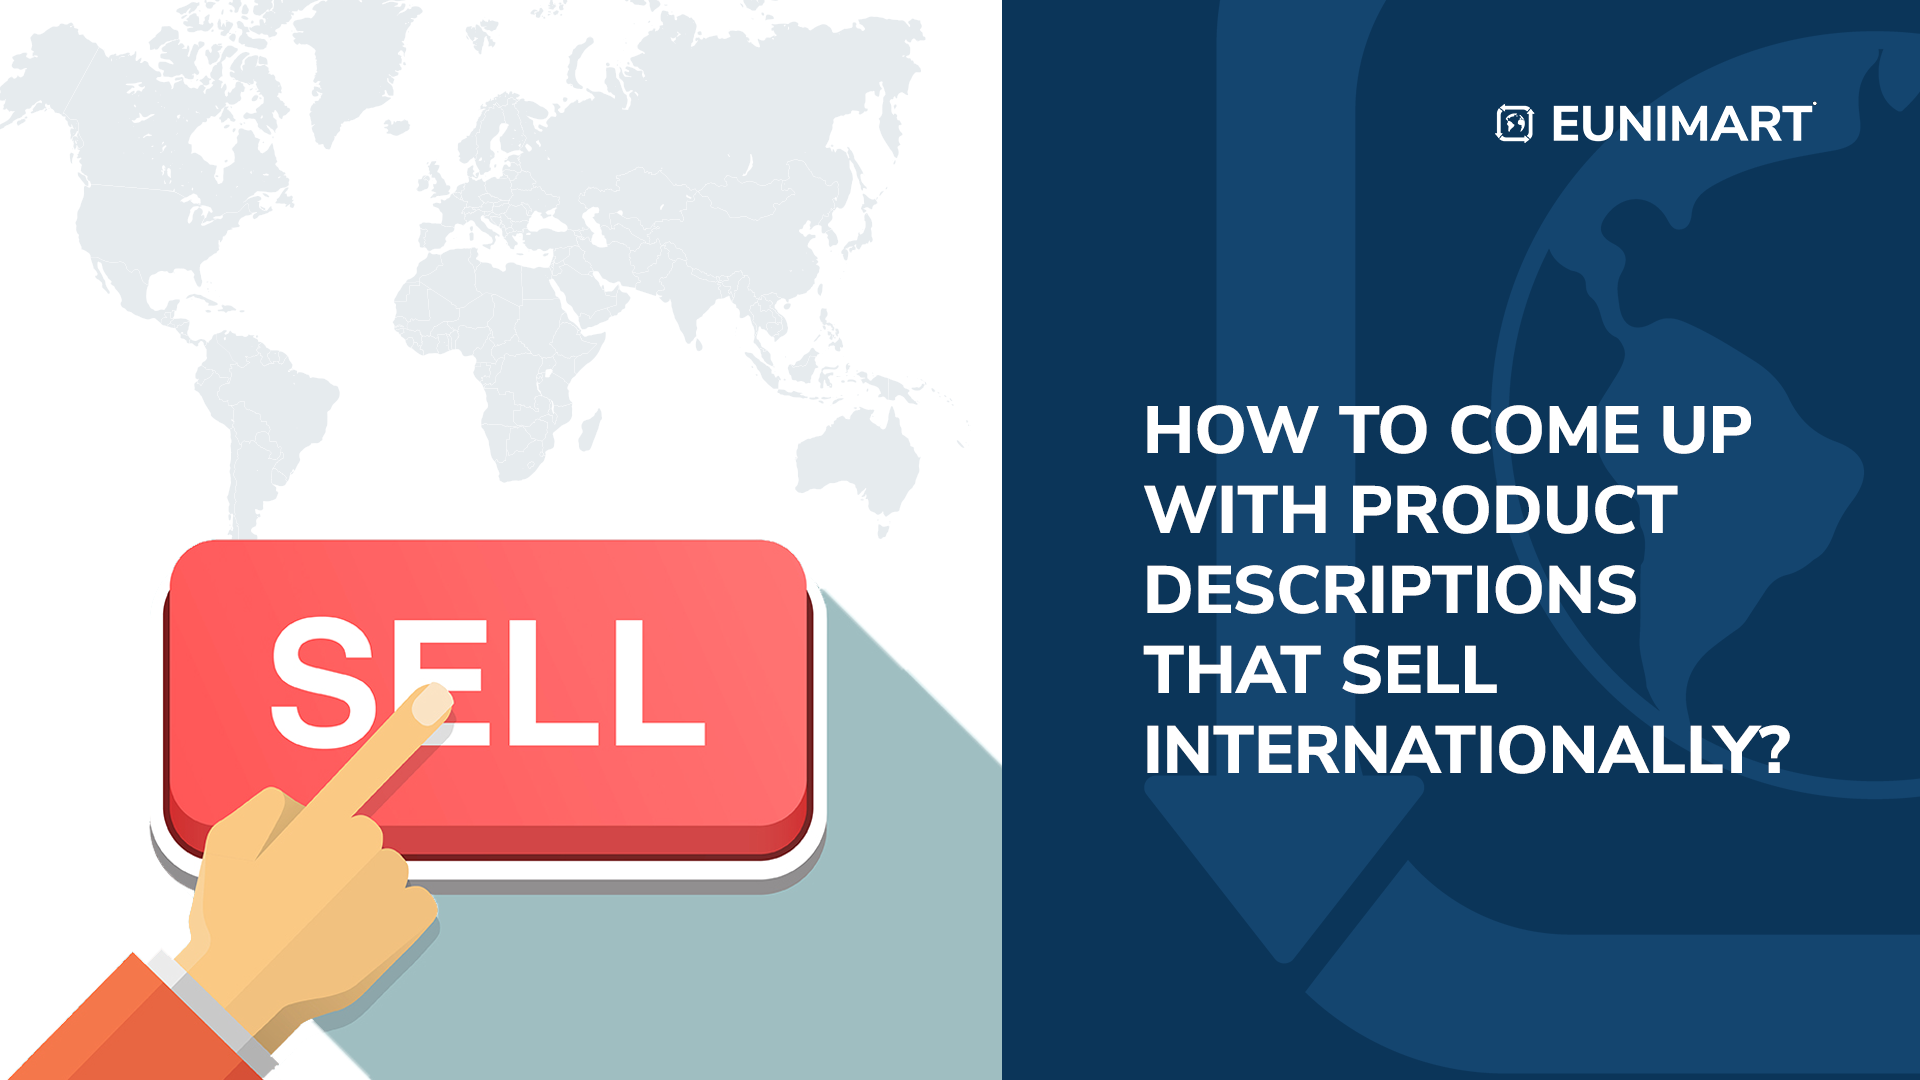 How to Come Up with Product Descriptions that Sell Internationally?